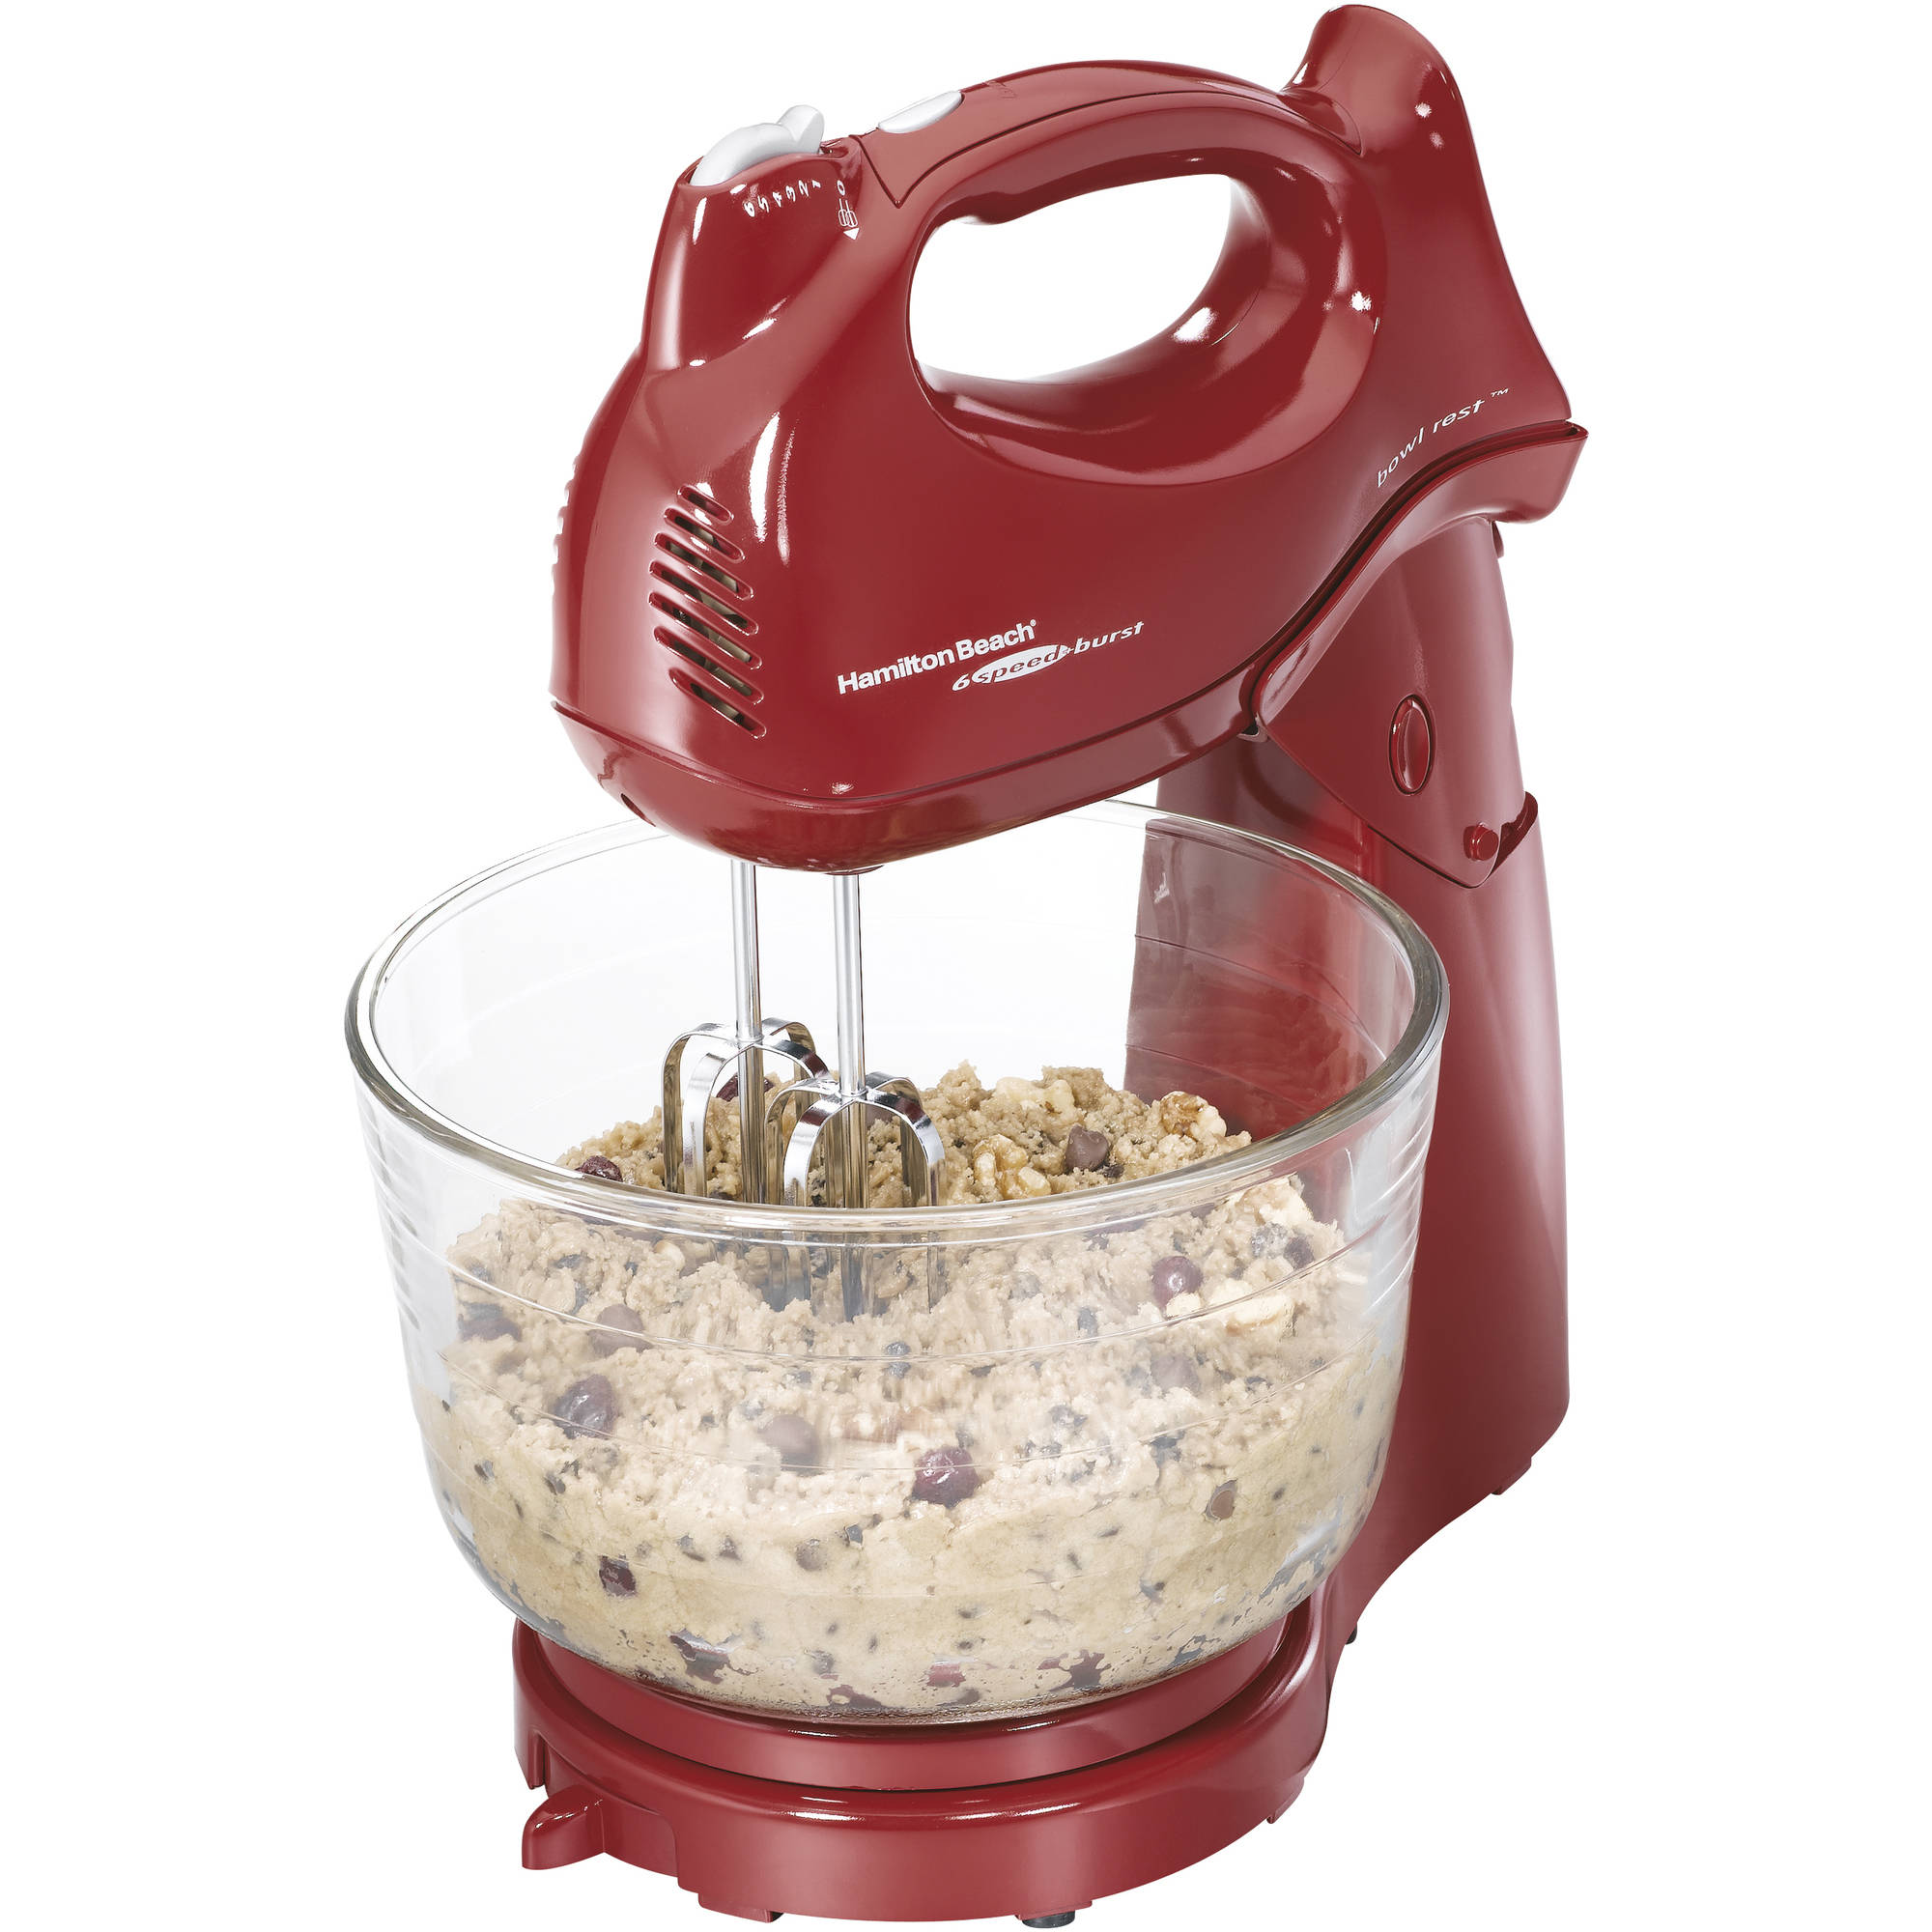 Hamilton Beach Power Deluxe 4-Quart Stand Mixer